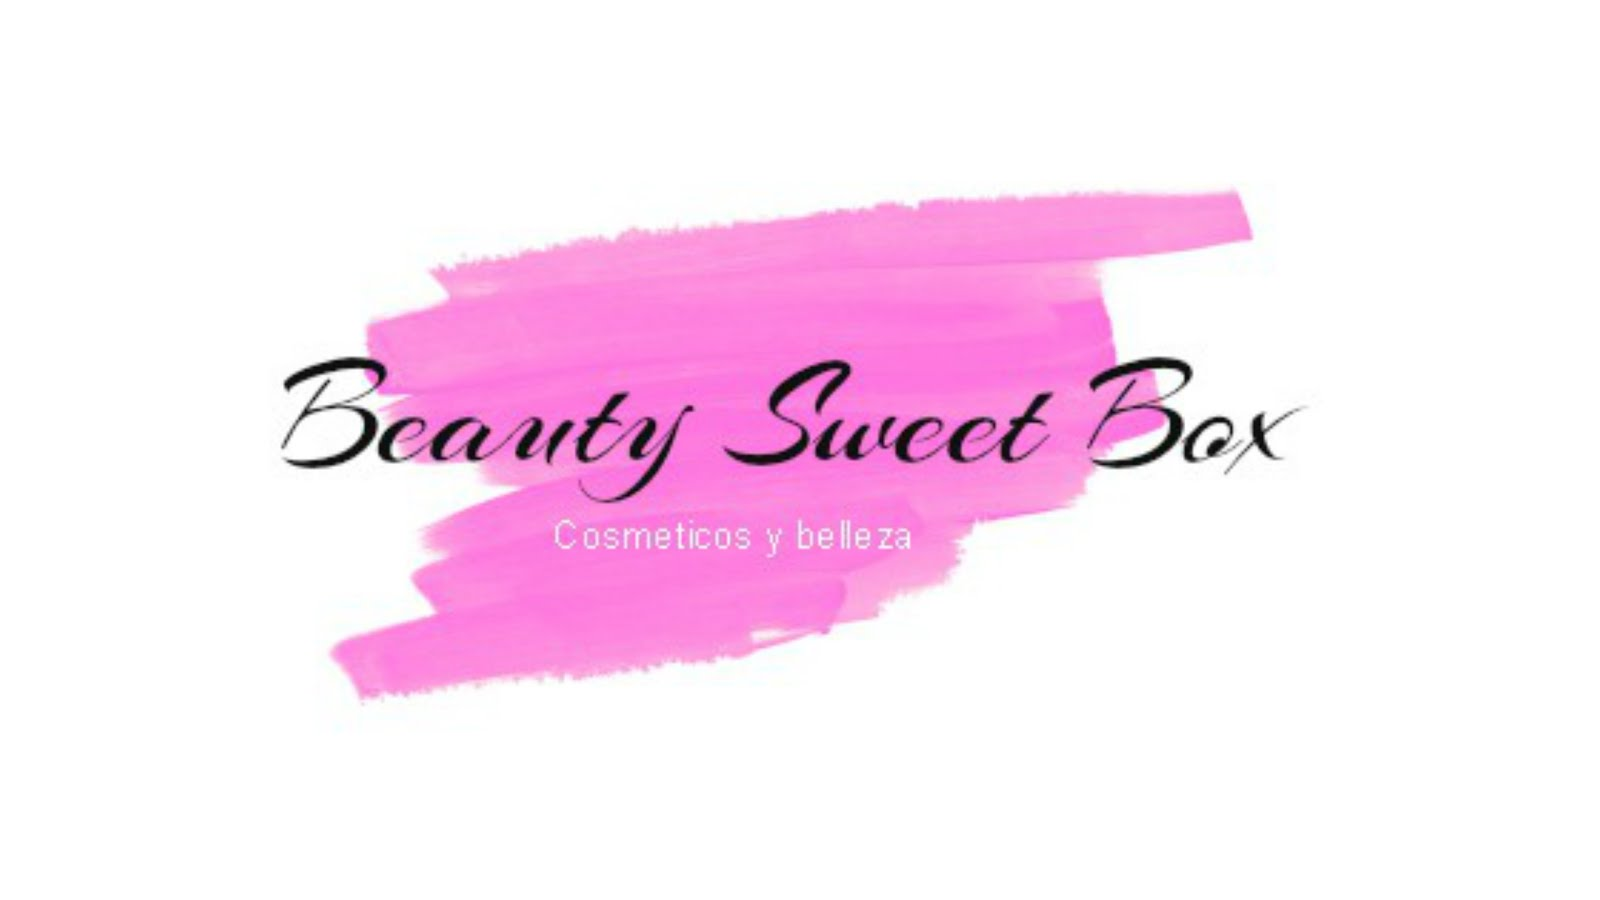 Encarga tu Beauty Box